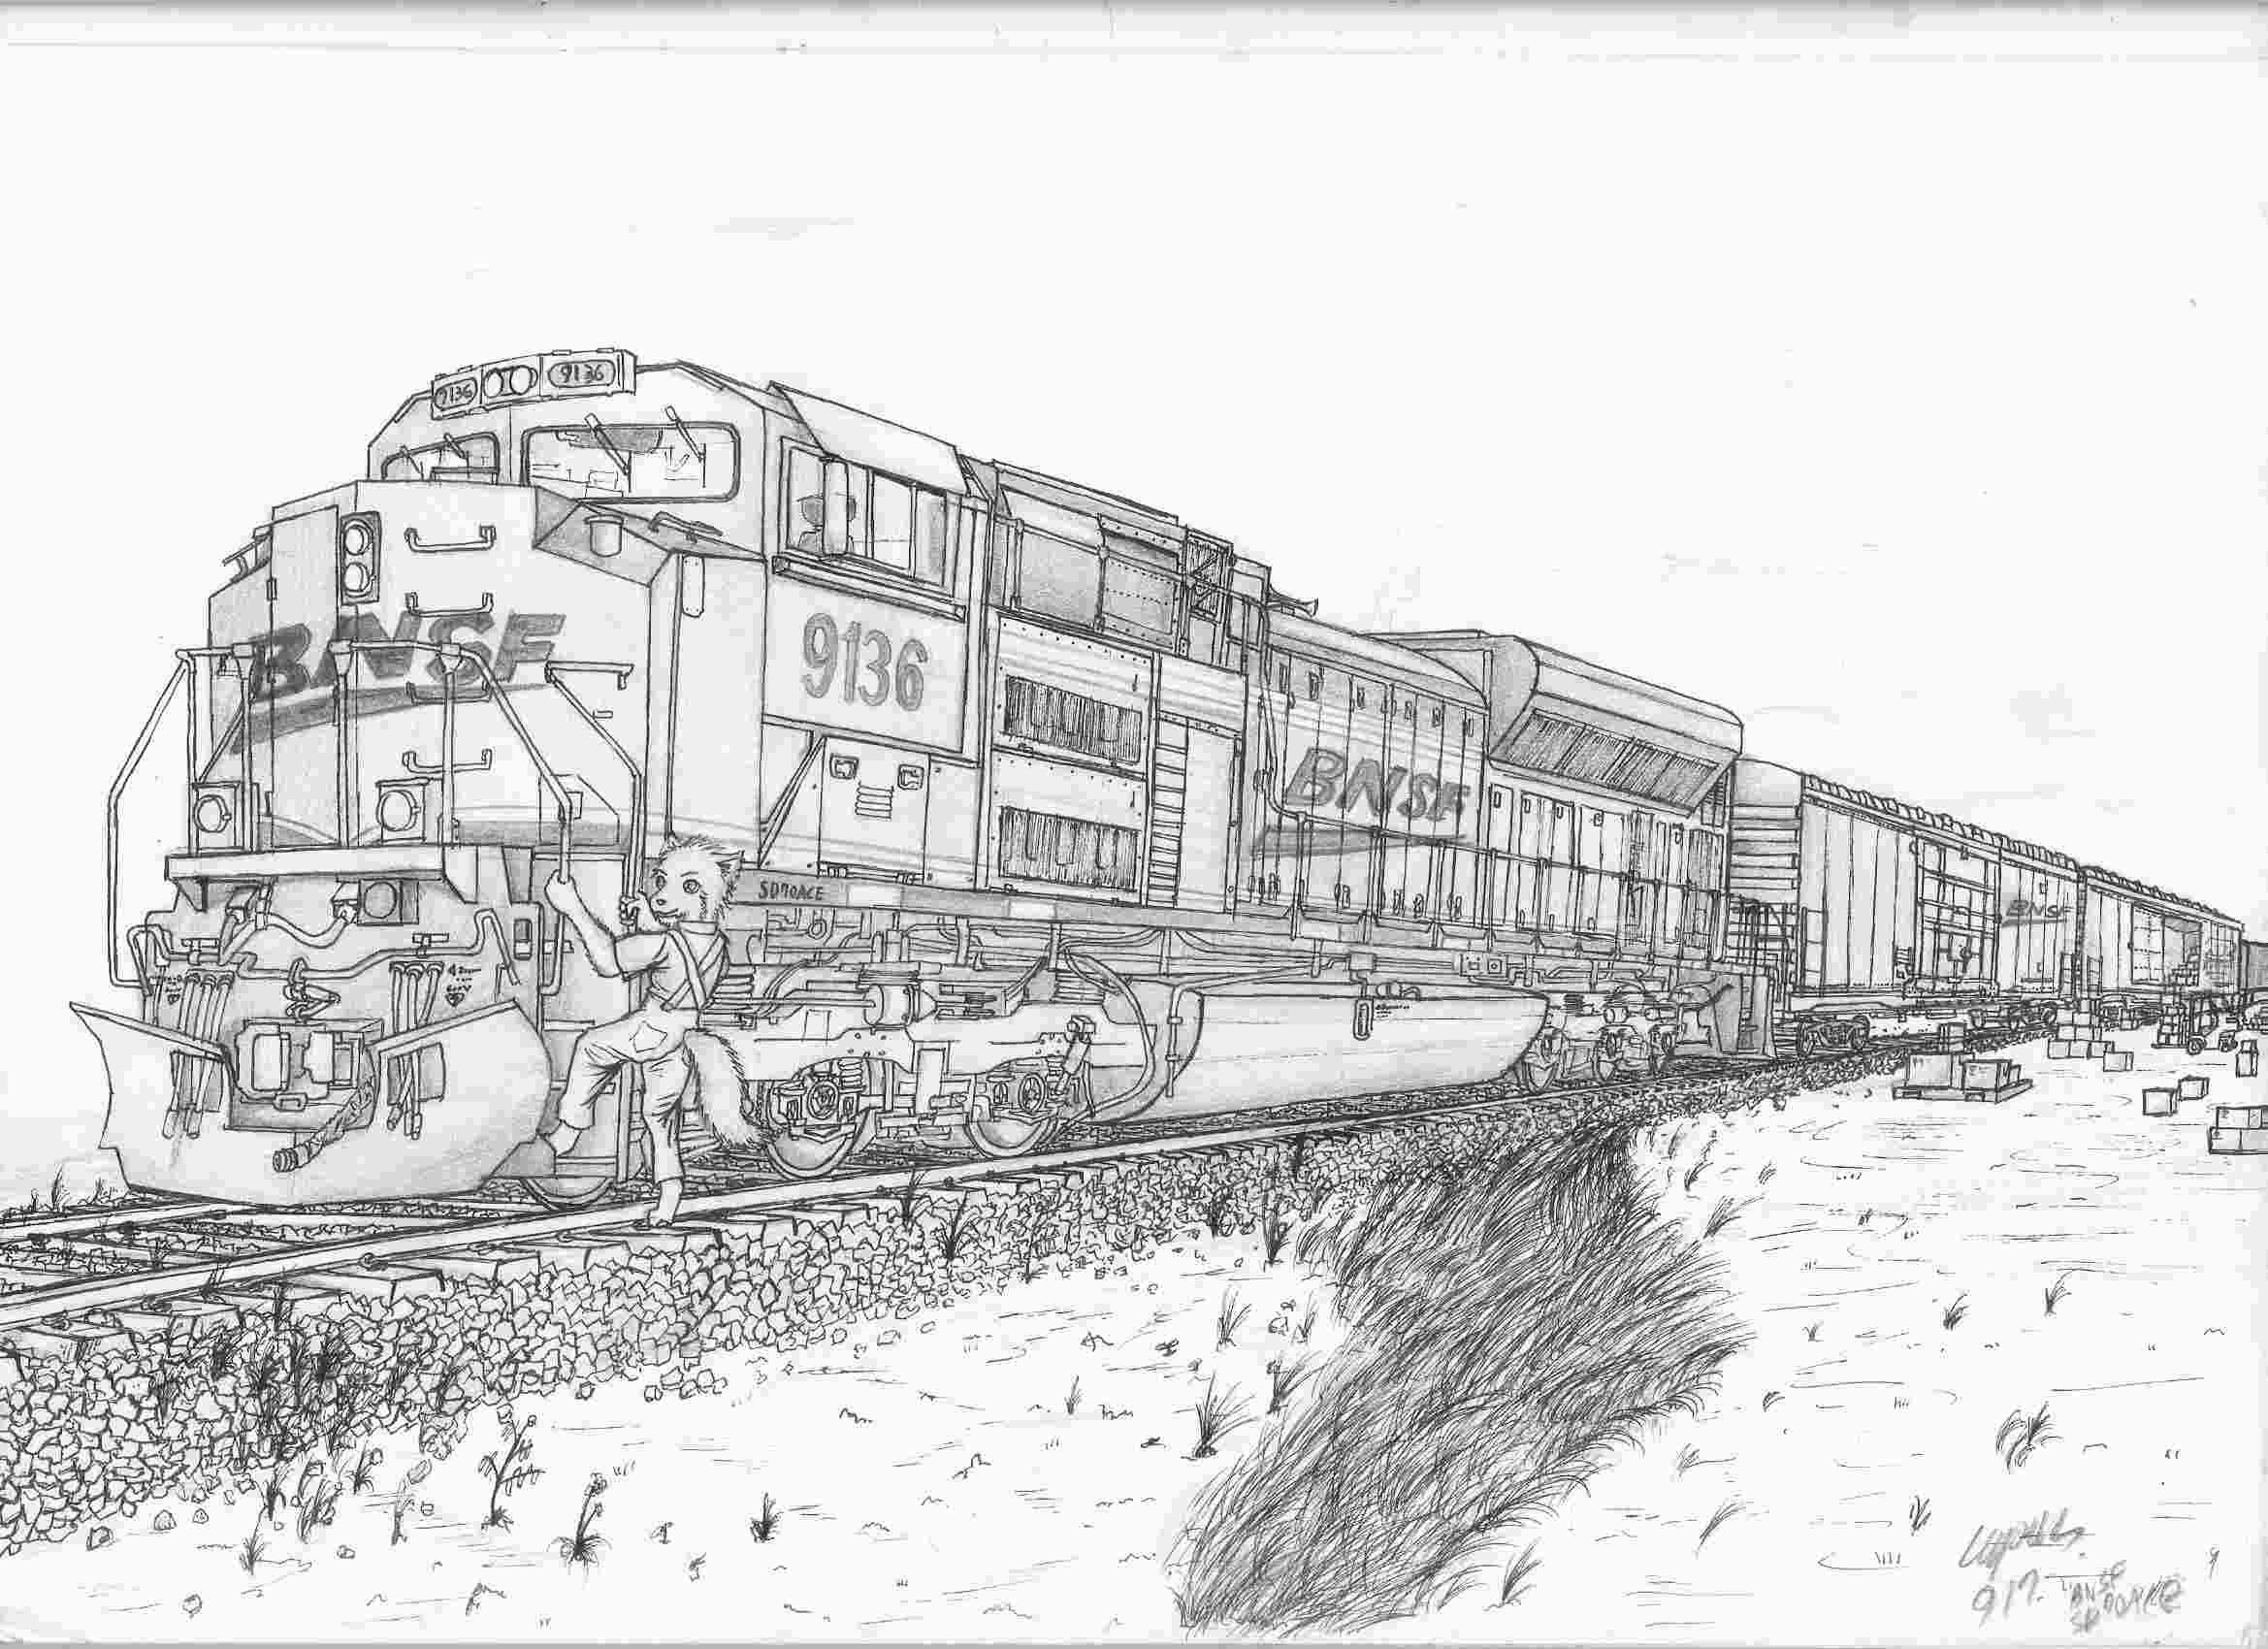 Bnsf Train Coloring Pages - Learning How to Read